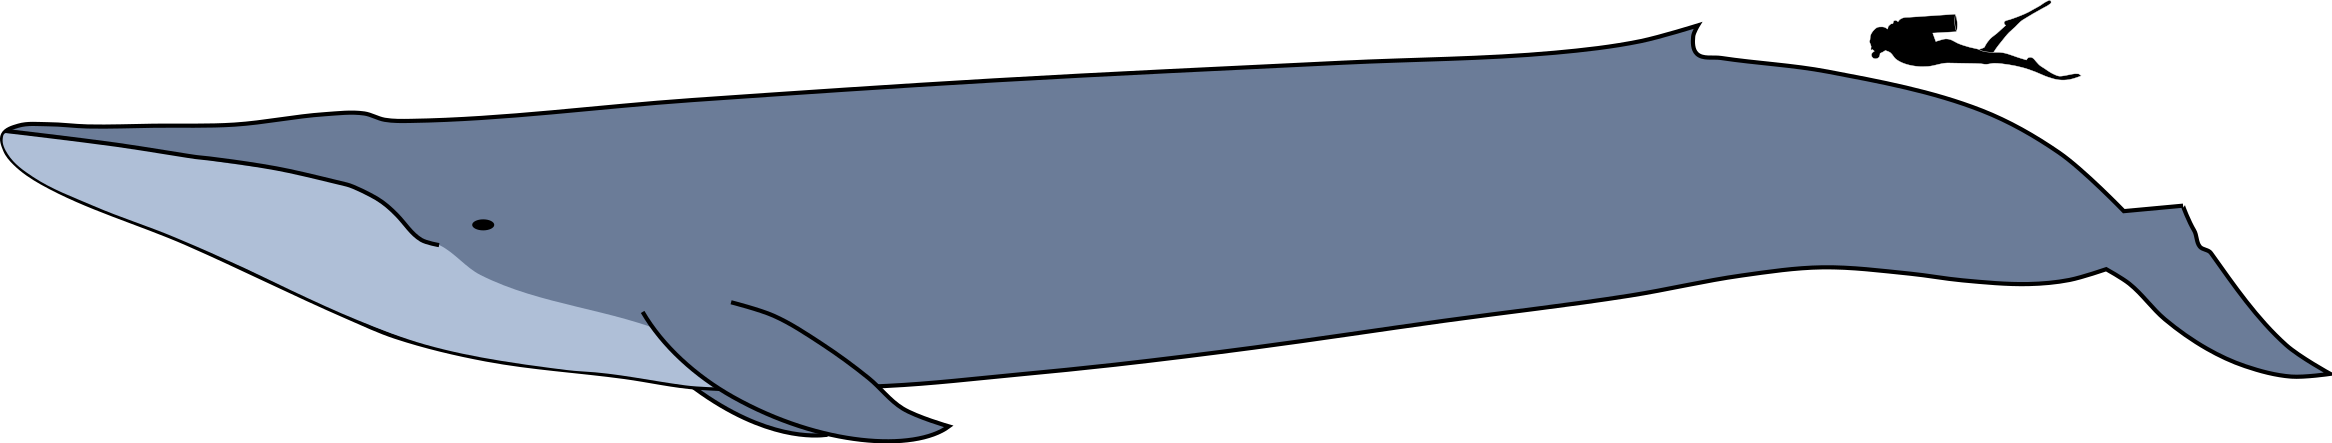 Blue_whale_size.svg.png